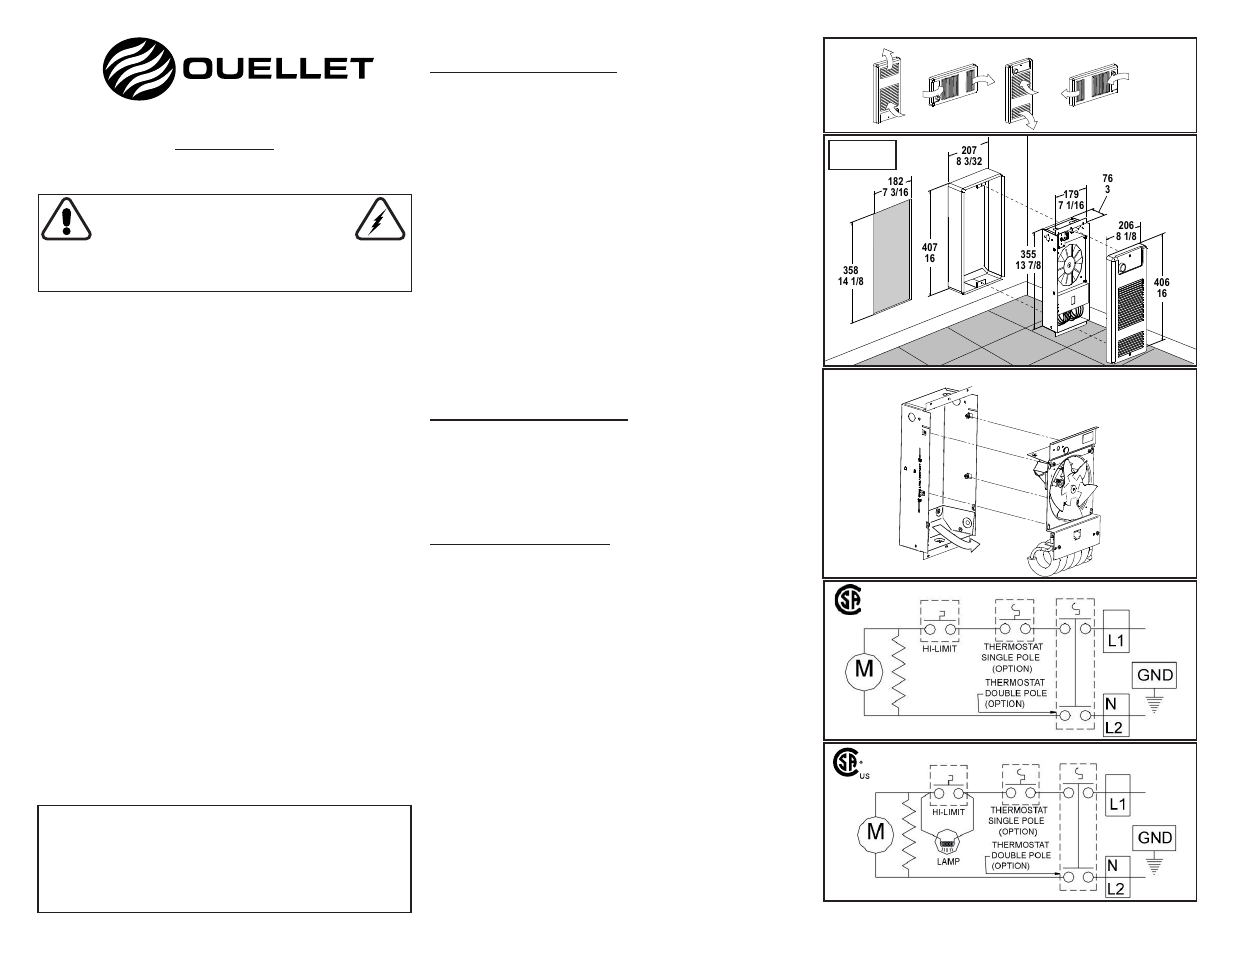 Ewcqfig furthermore Dsc also Nec Dry Type Transformers Pr likewise Ouellet Ovs Page likewise B F B F. on electrical outlet wiring diagram